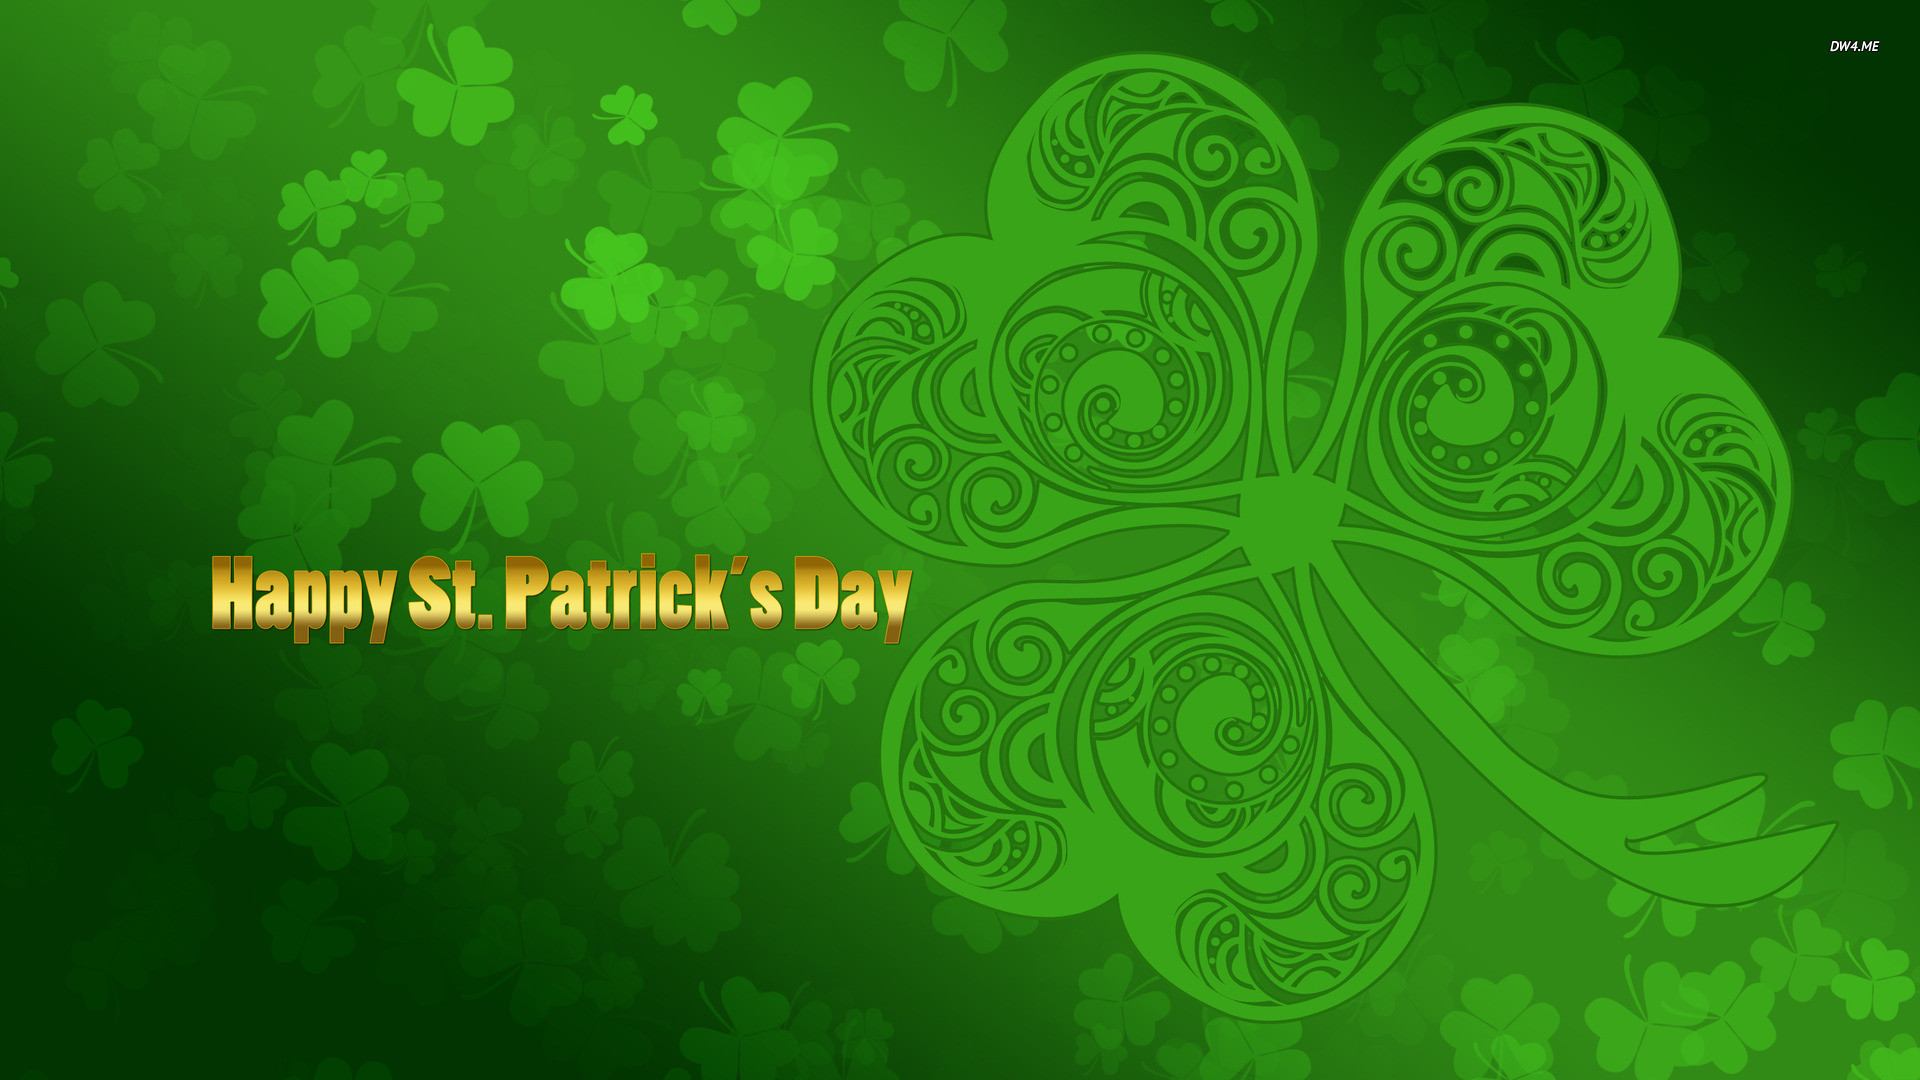 St Patricks Day Screensavers Wallpapers (51+ images)